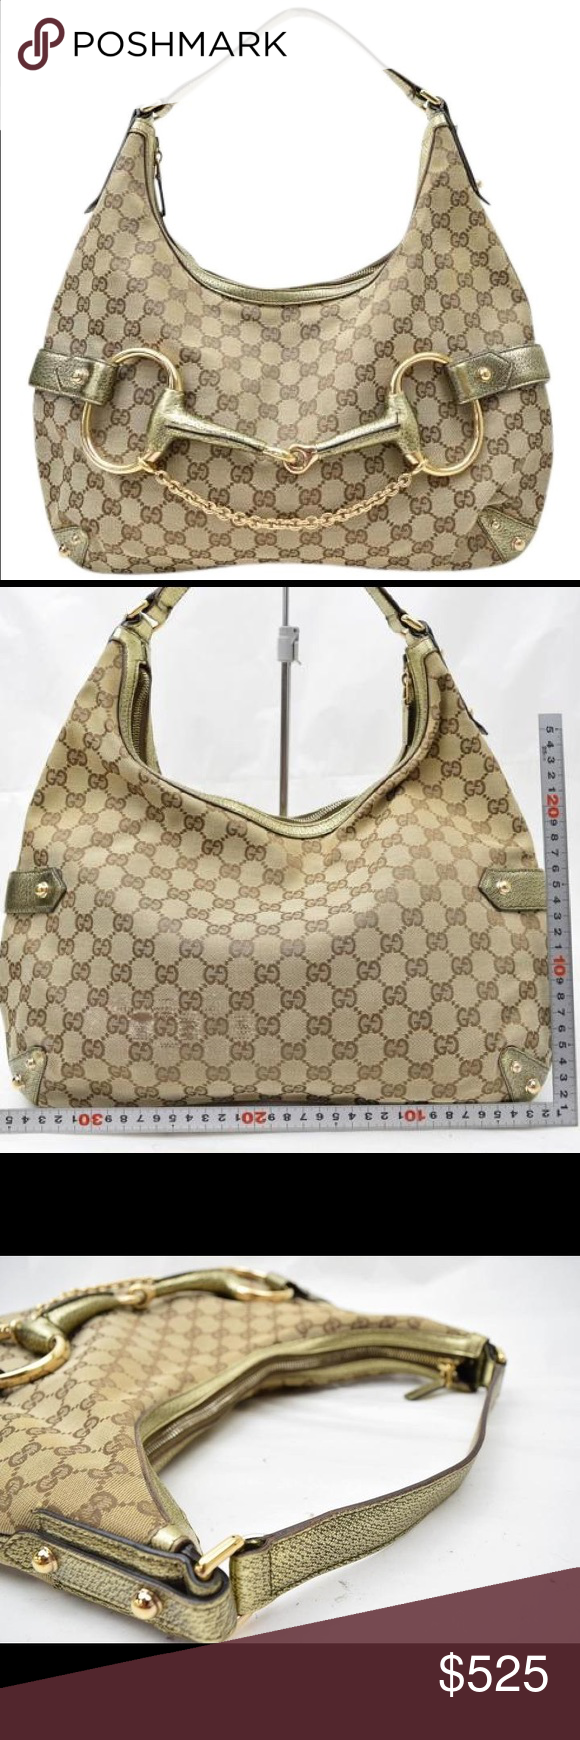 54ff874c631b Gucci Horsebit Hobo Tote Bag GG jacquard monogram canvas in beige / tan  with gold metallic